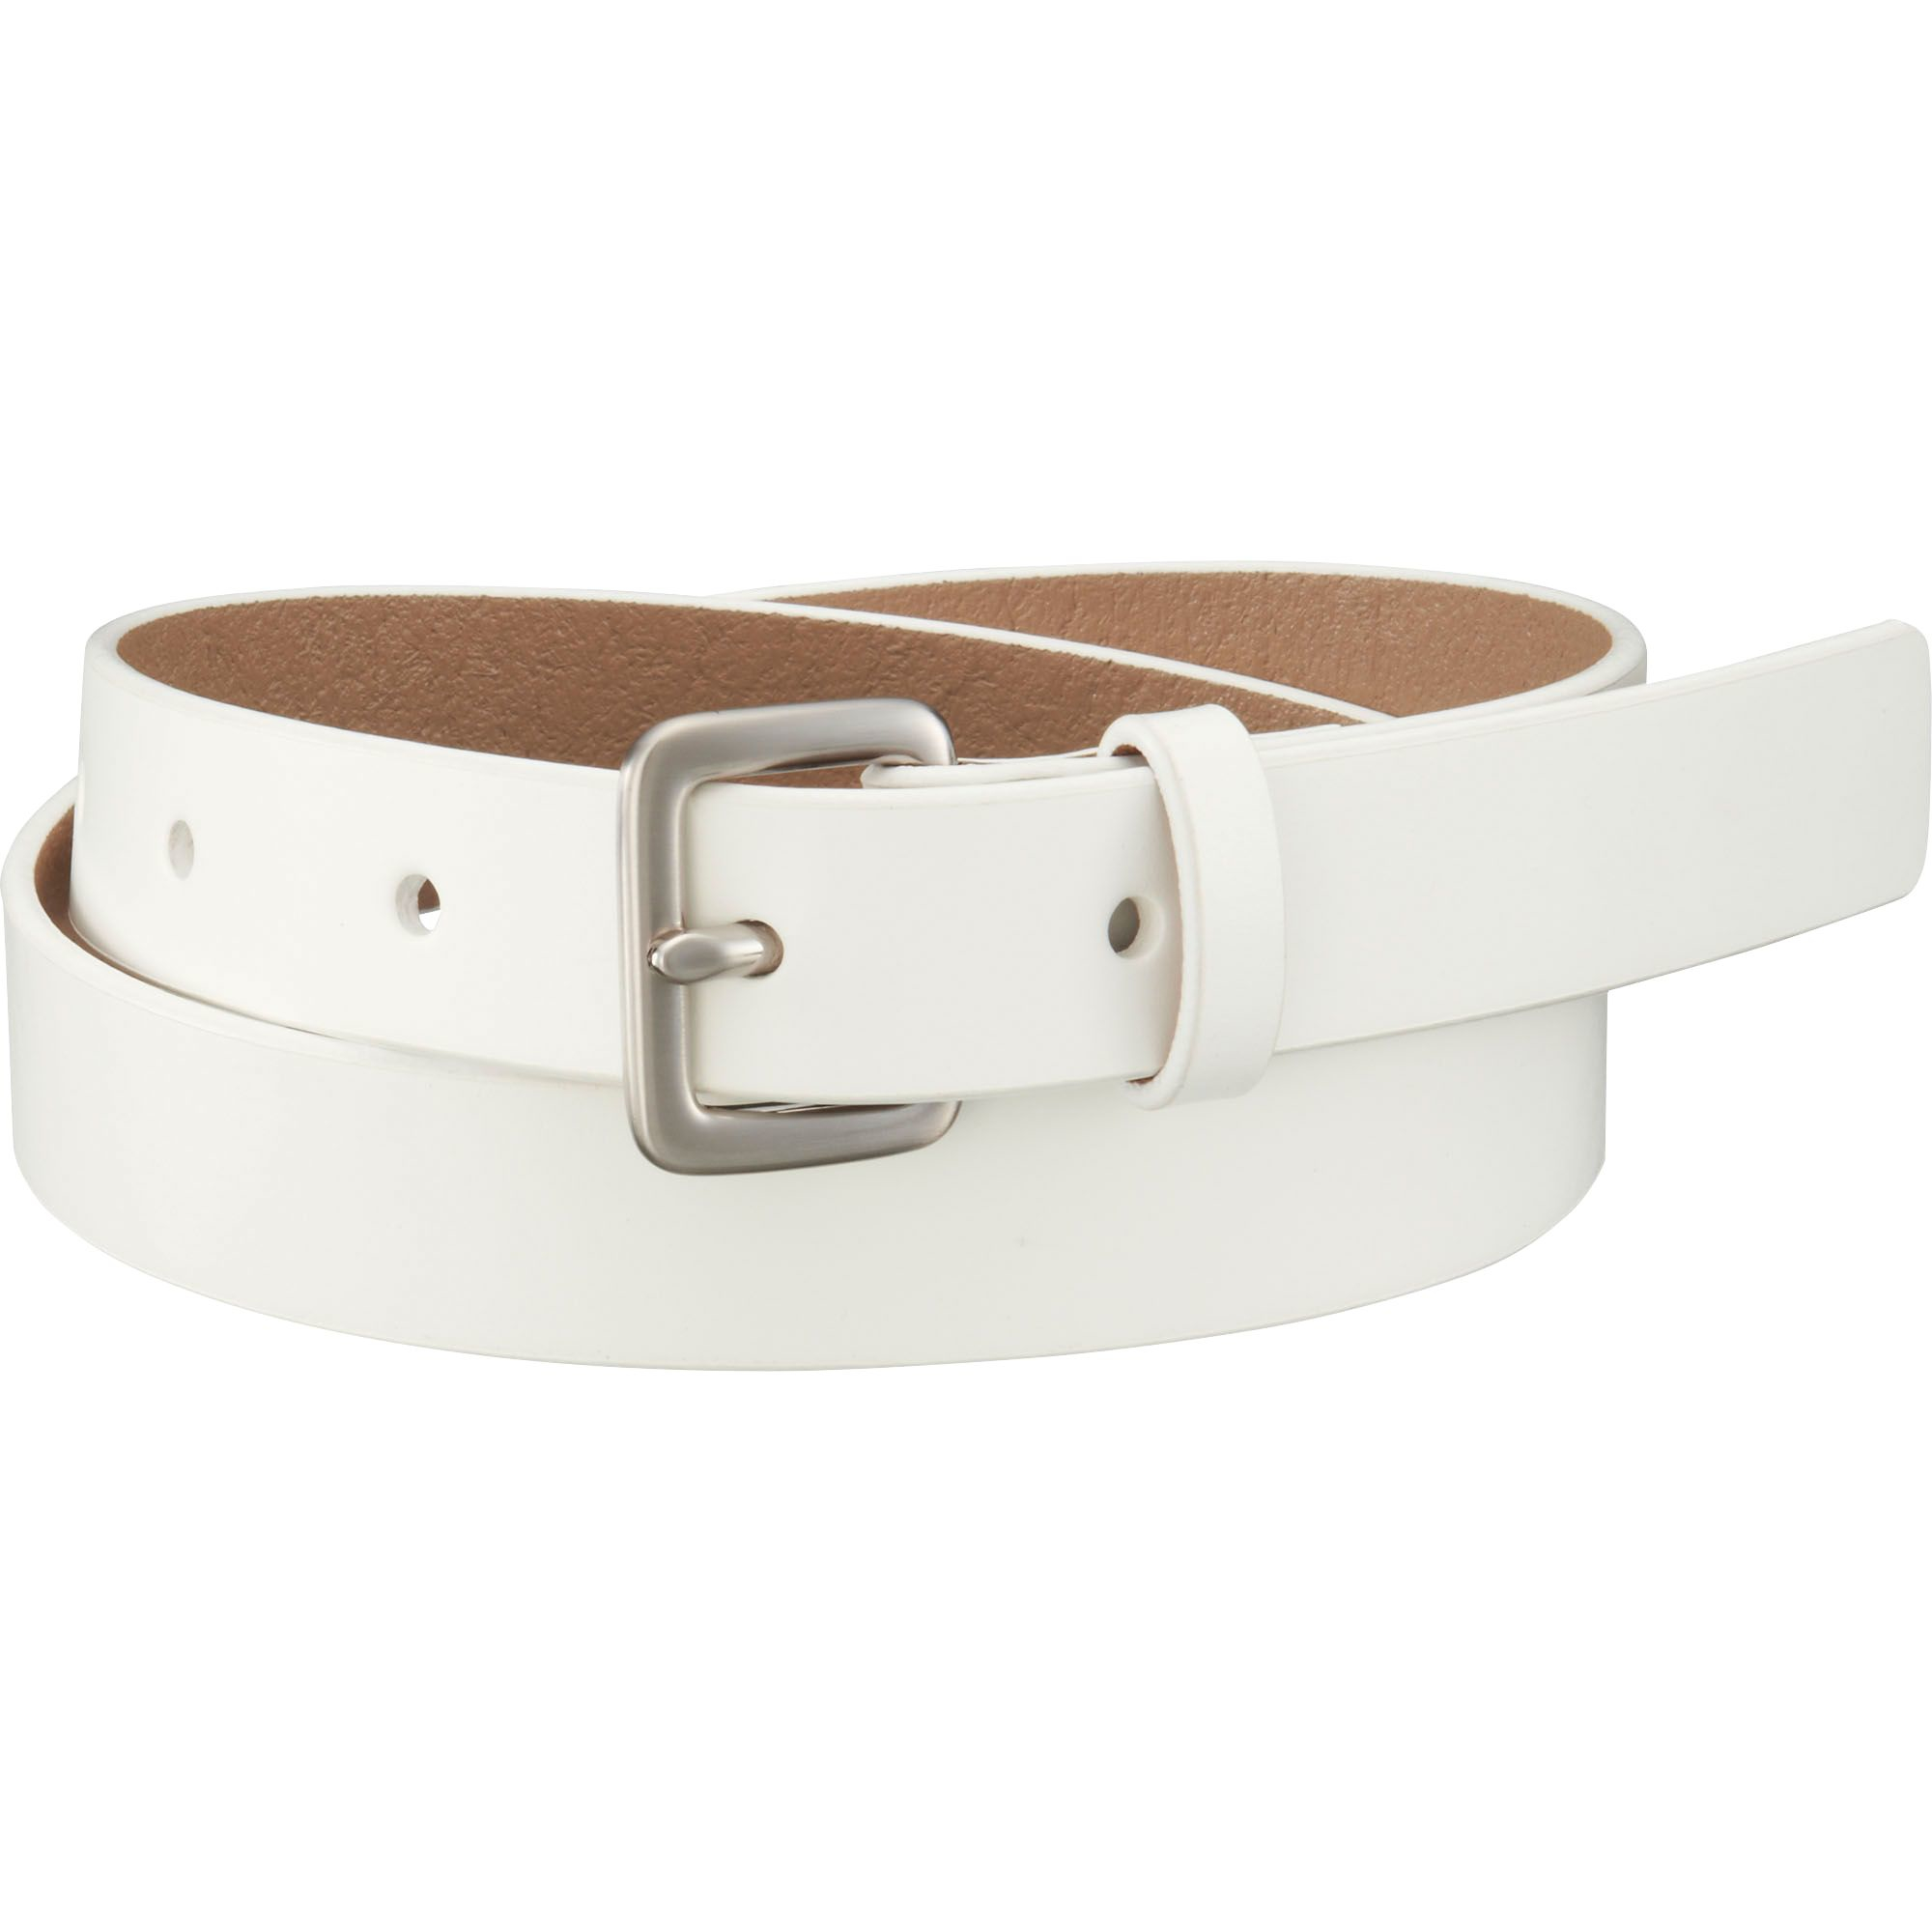 Women's Belts: Free Shipping on orders over $45 at rabbetedh.ga - Your Online Belts Store! Get 5% in rewards with Club O! EMP Unisex White Bonded-leather Grommet 2-holes Belt. 13 Reviews. Quick View Belt Shak Women's Italian Leather Belt with Celtic Knot Buckle. More Options.